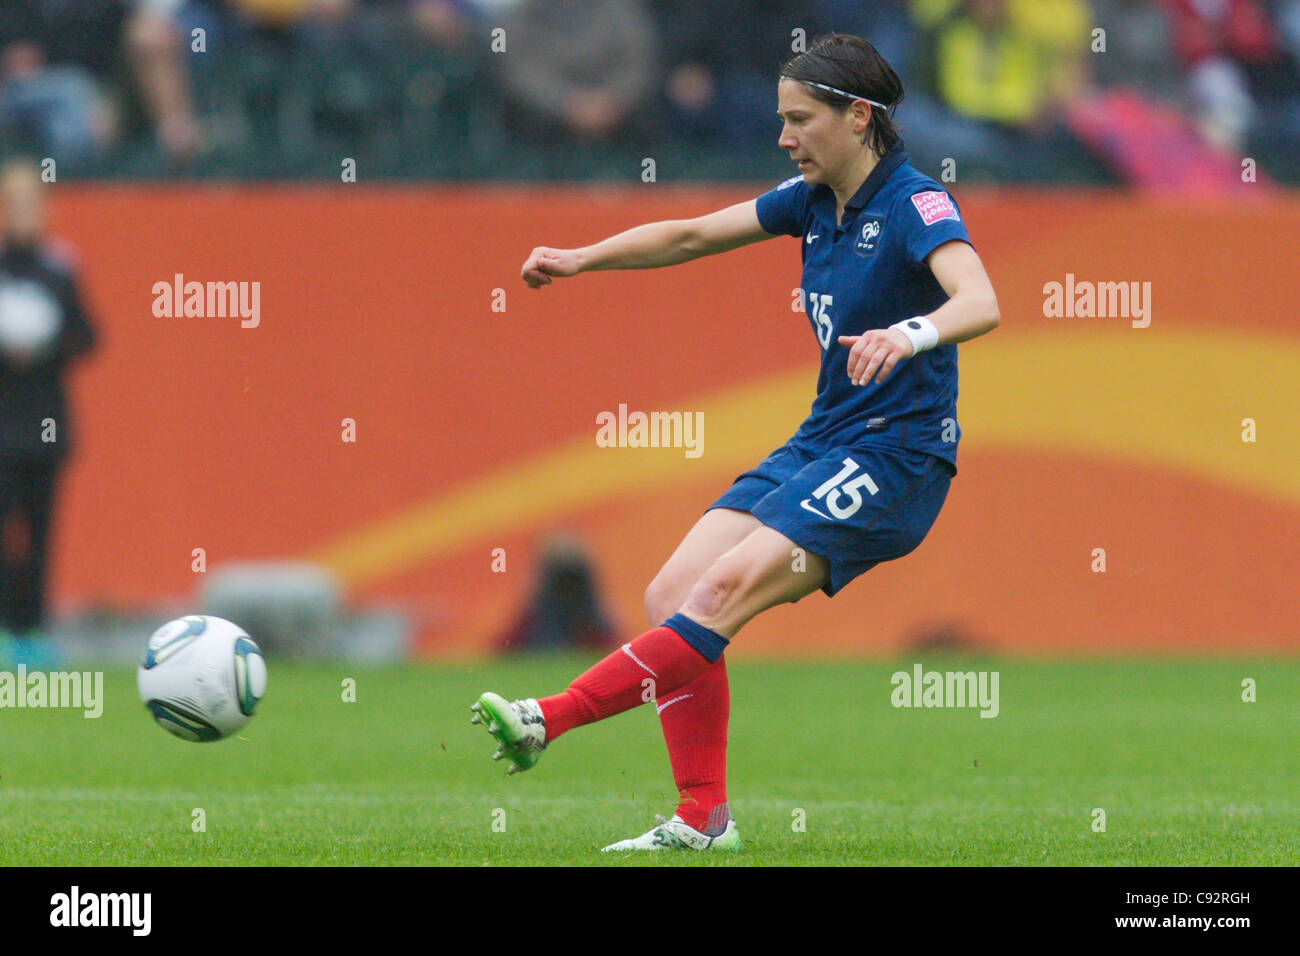 Elise Bussaglia of France passes the ball during a FIFA Women's World Cup semifinal soccer match against the - Stock Image